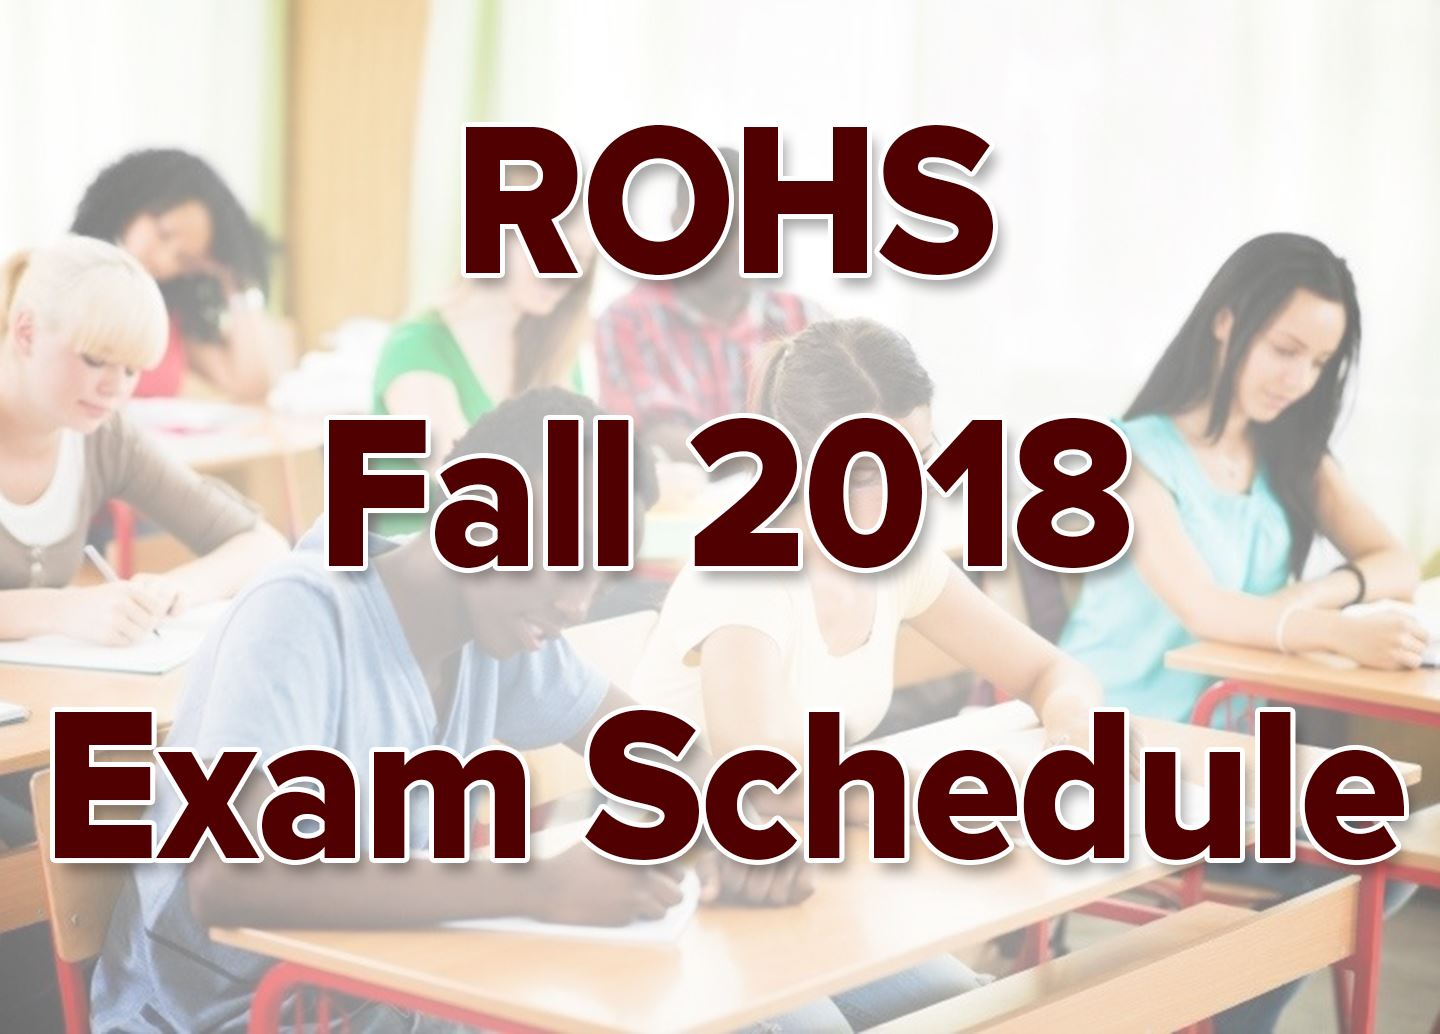 ROHS Fall 2018 Exam Schedule